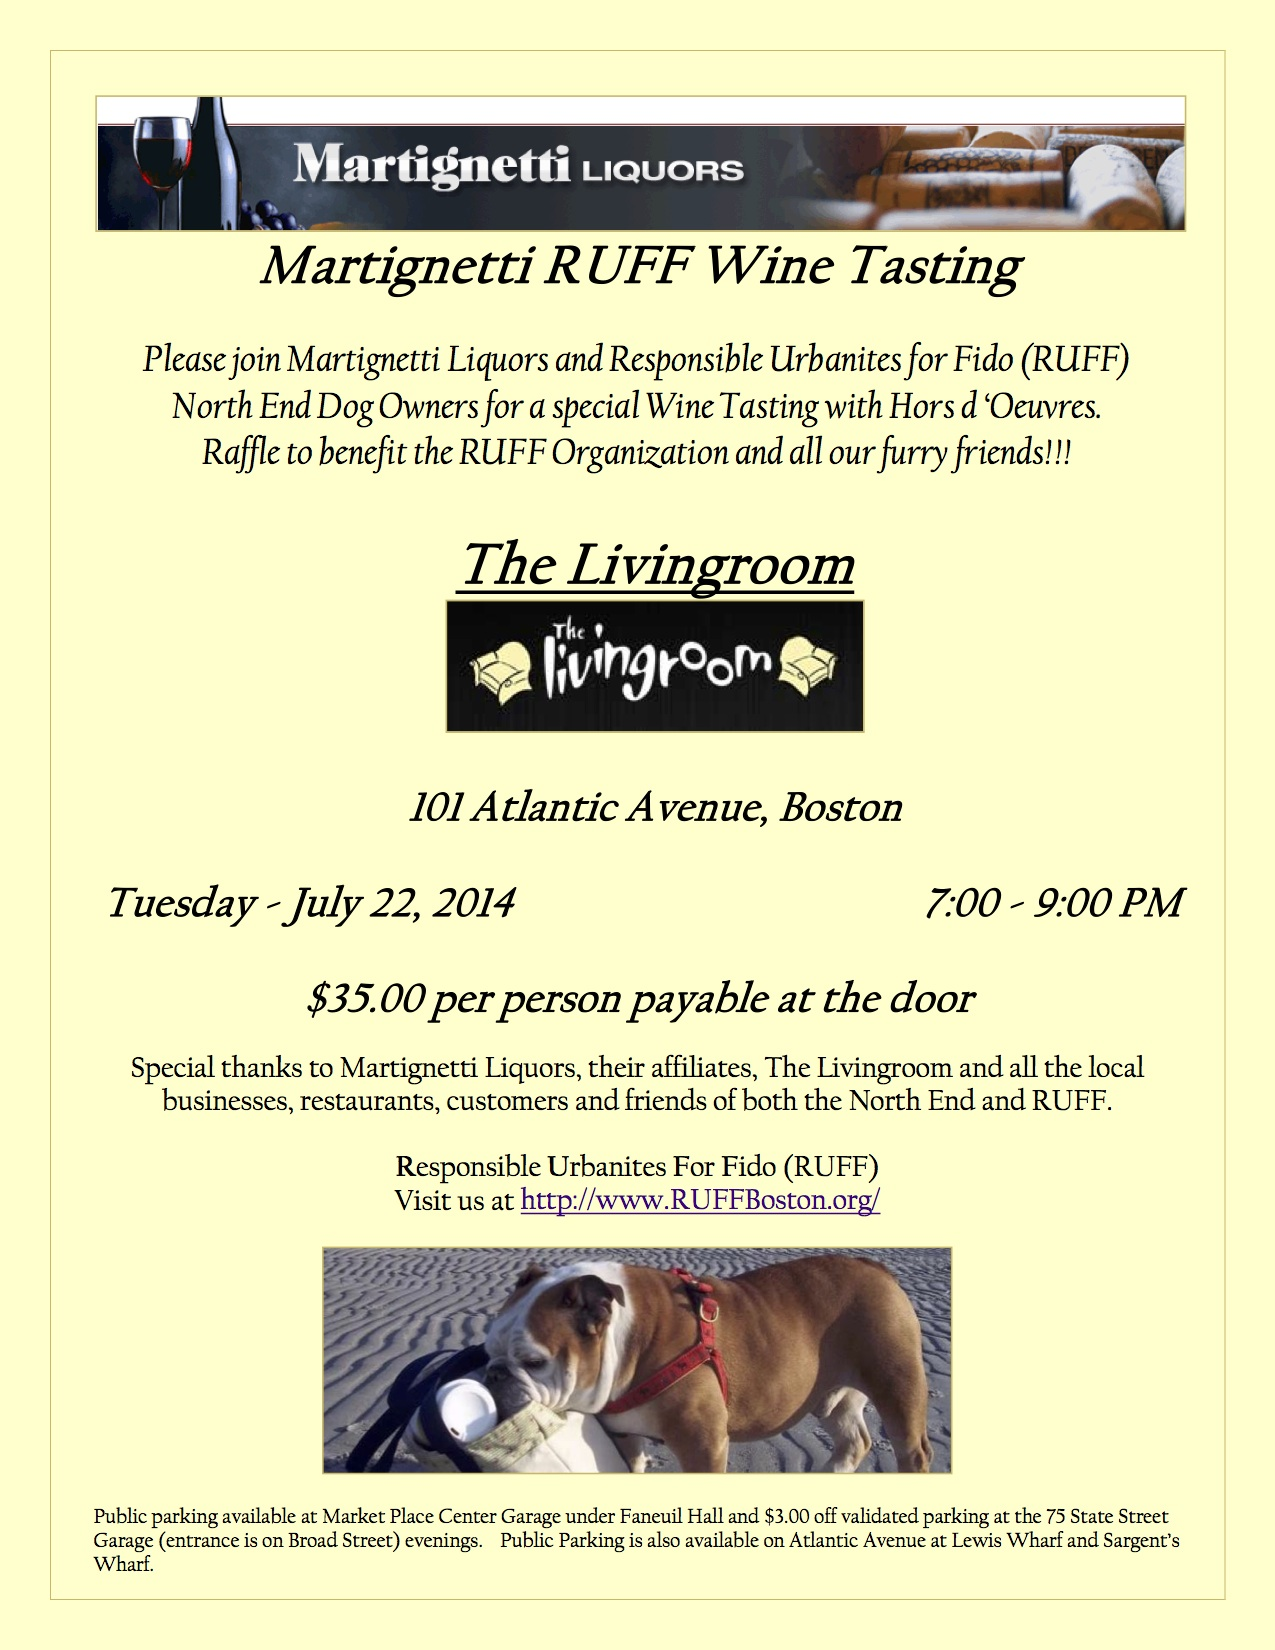 Responsible urbanites for fido ruff to hold wine tasting for Living room 101 atlantic ave boston